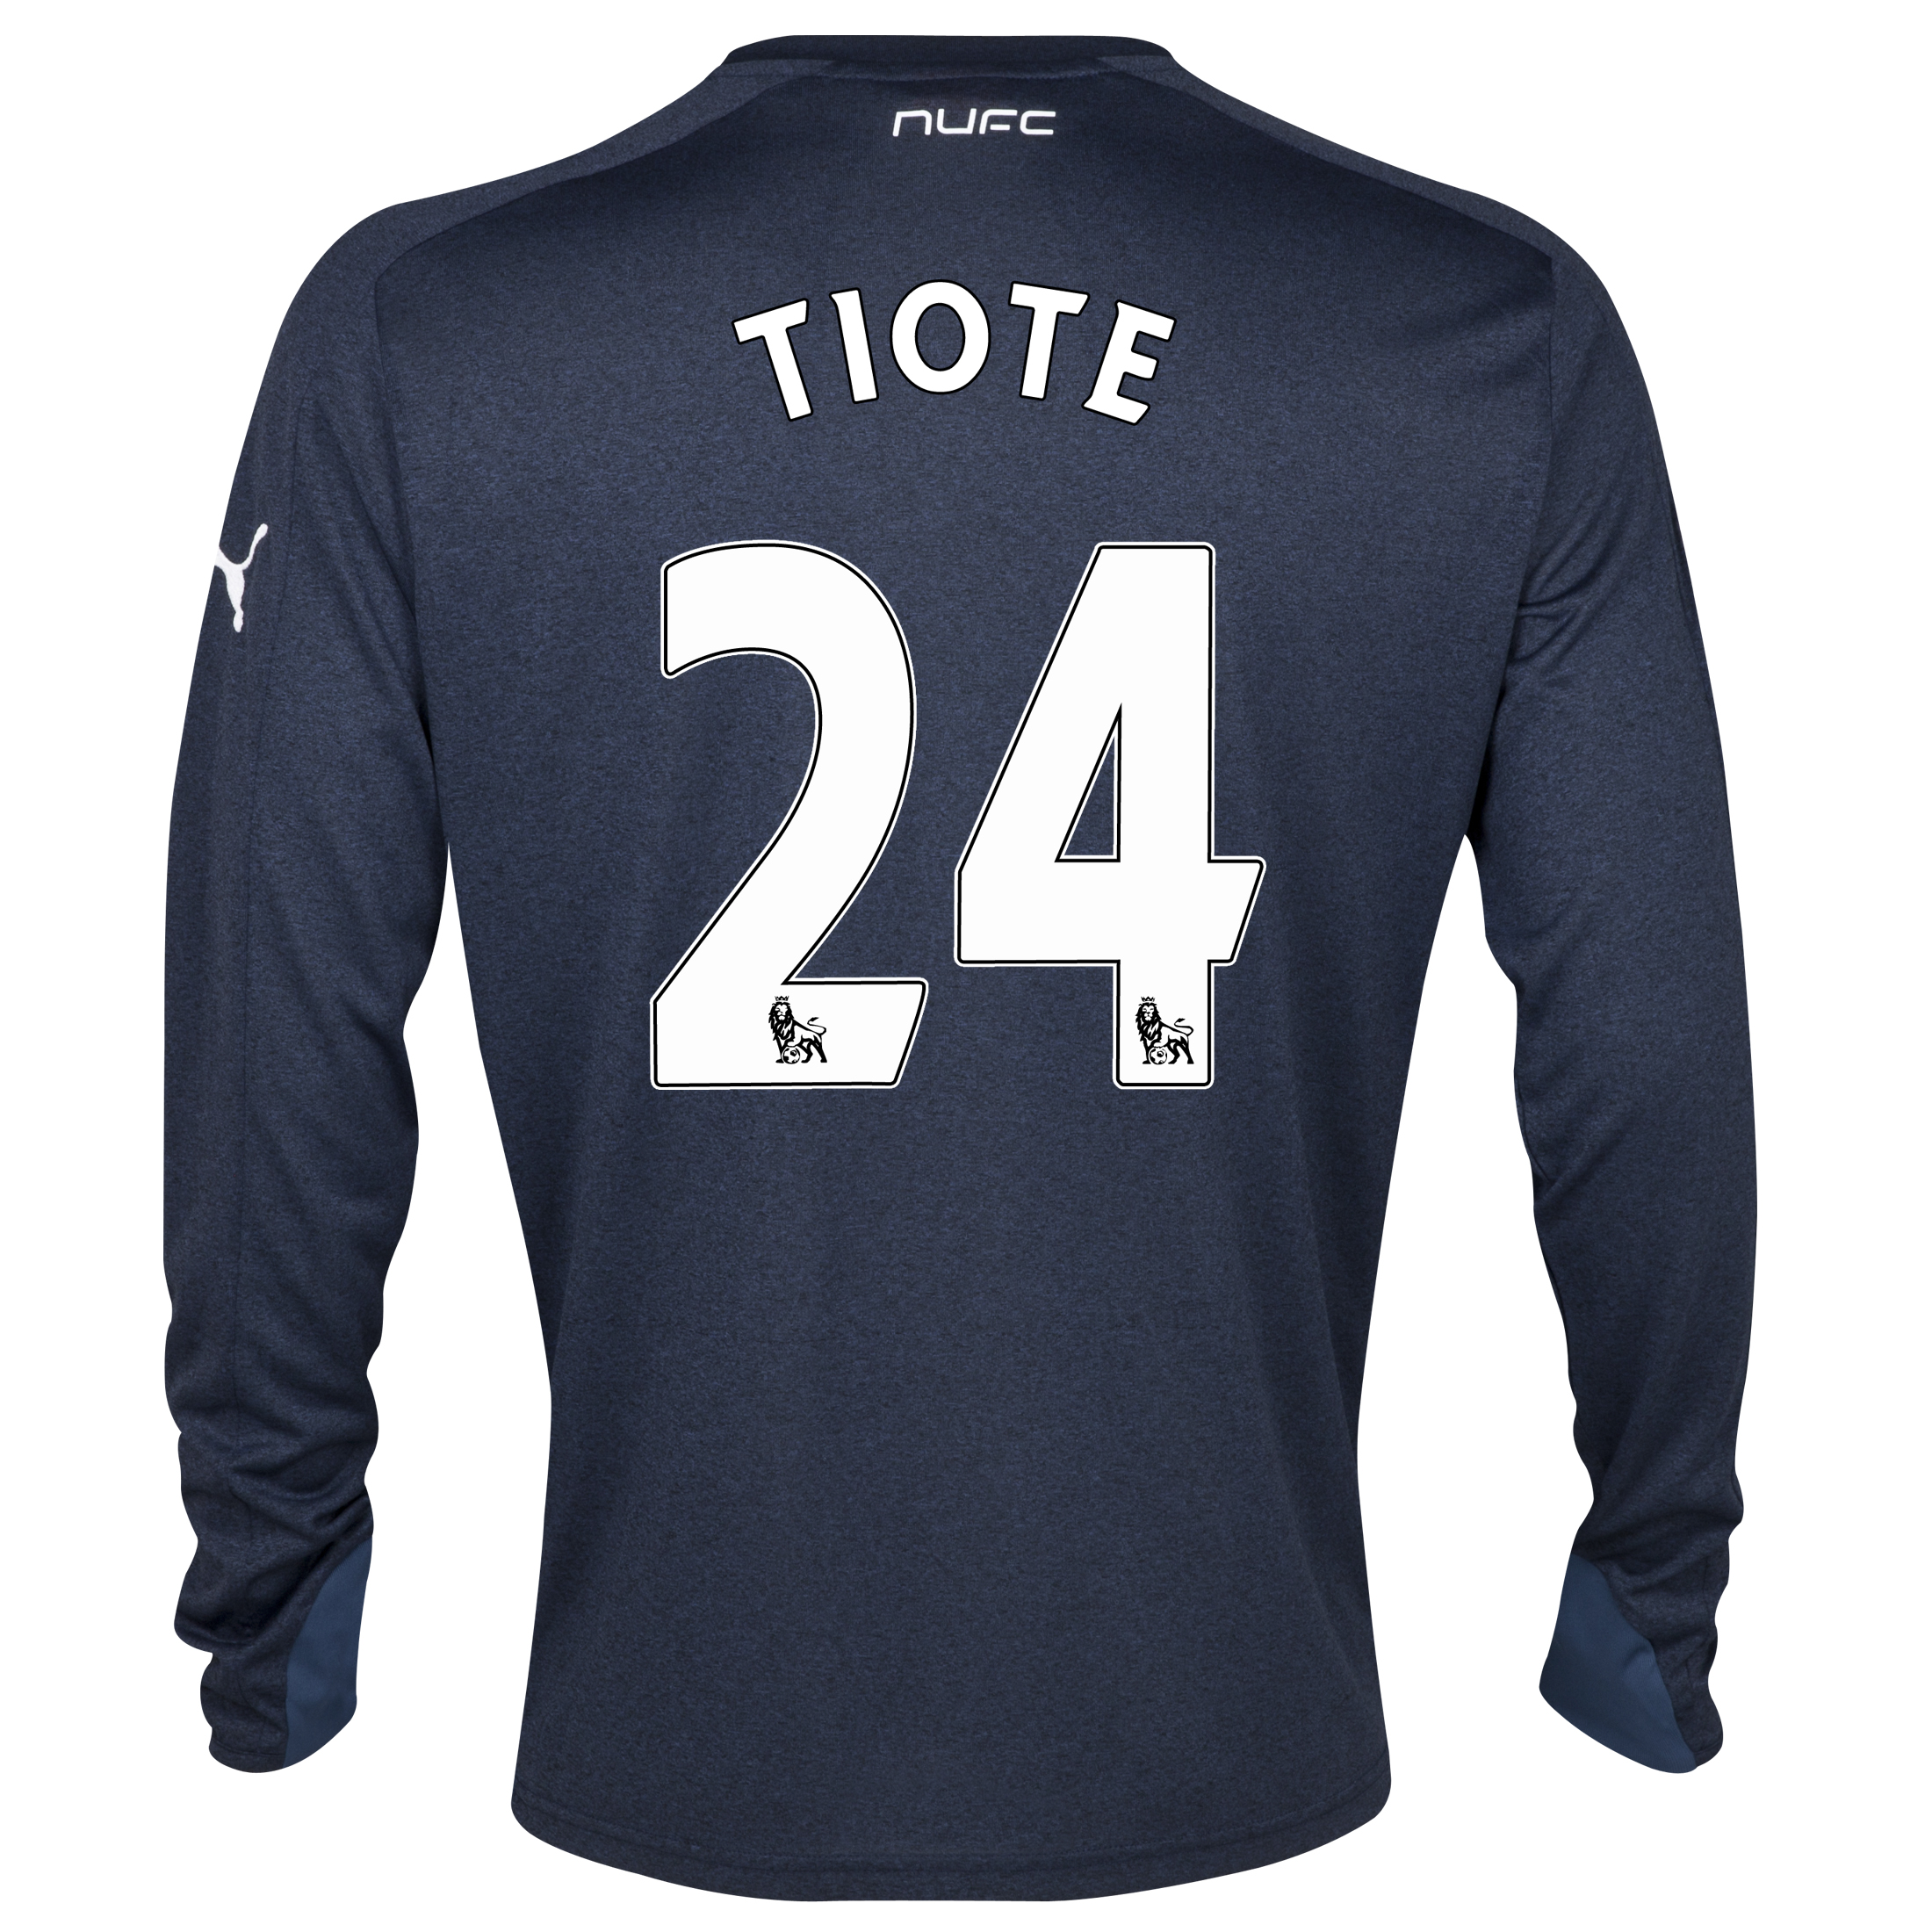 Newcastle United Away Shirt 2013/14 -Womens with Tiote 24 printing